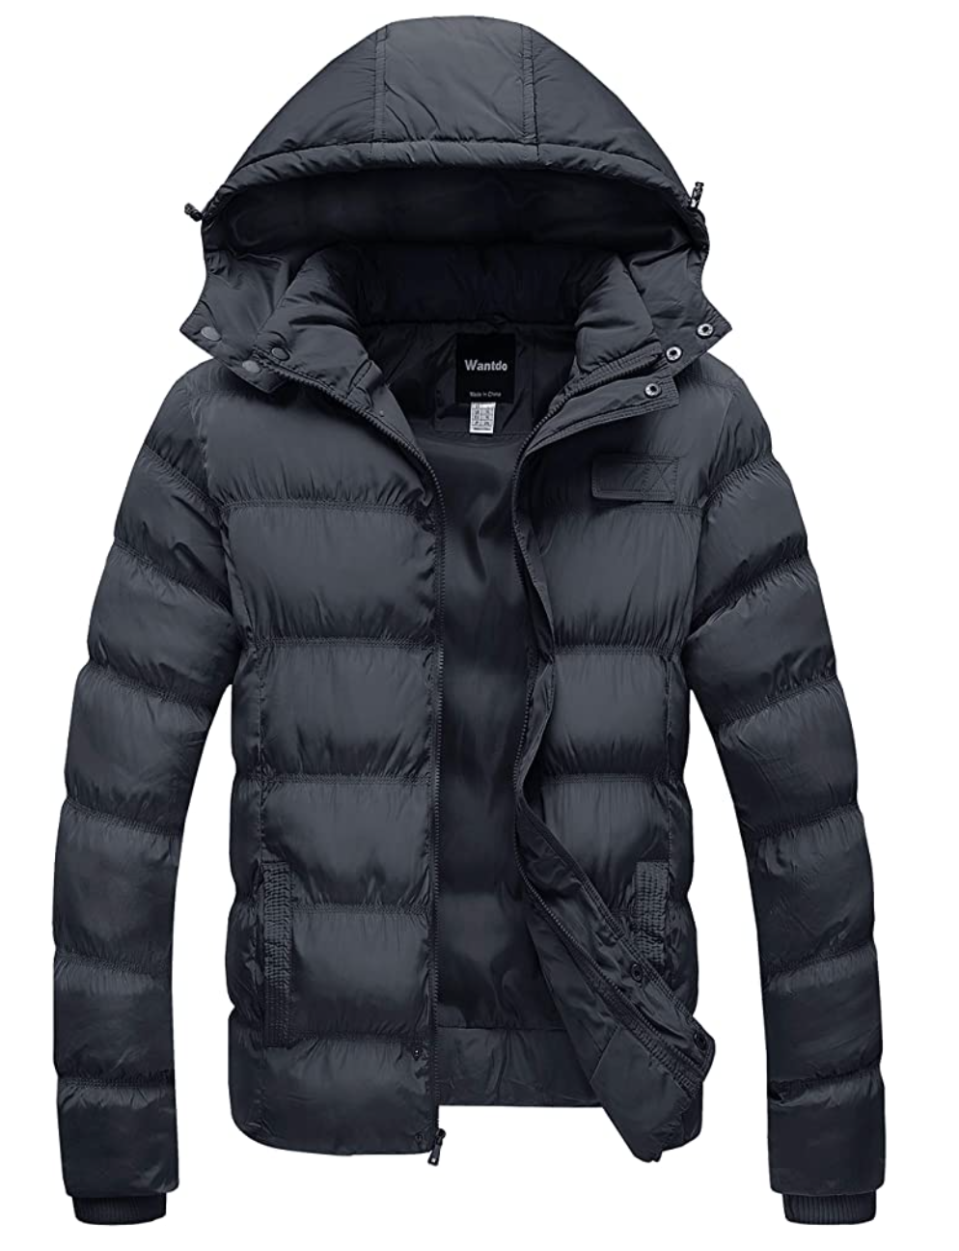 Wantdo Men's Lightweight Hooded Puffer. Image via Amazon.